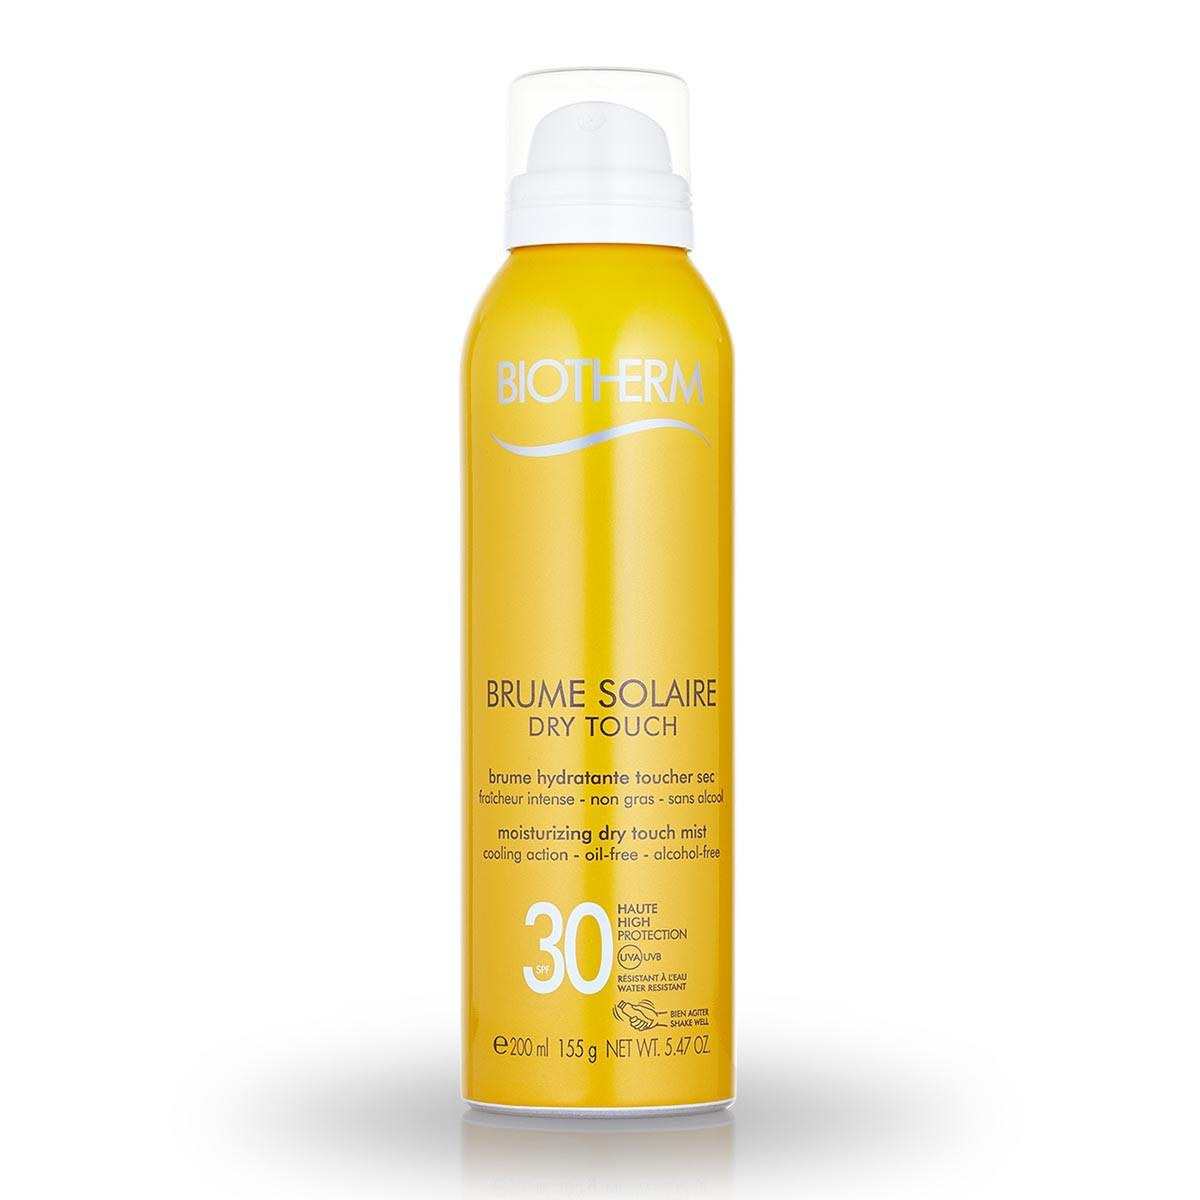 Biotherm Brume Solaire Dry Touch Oil Free Spf30 200 ml